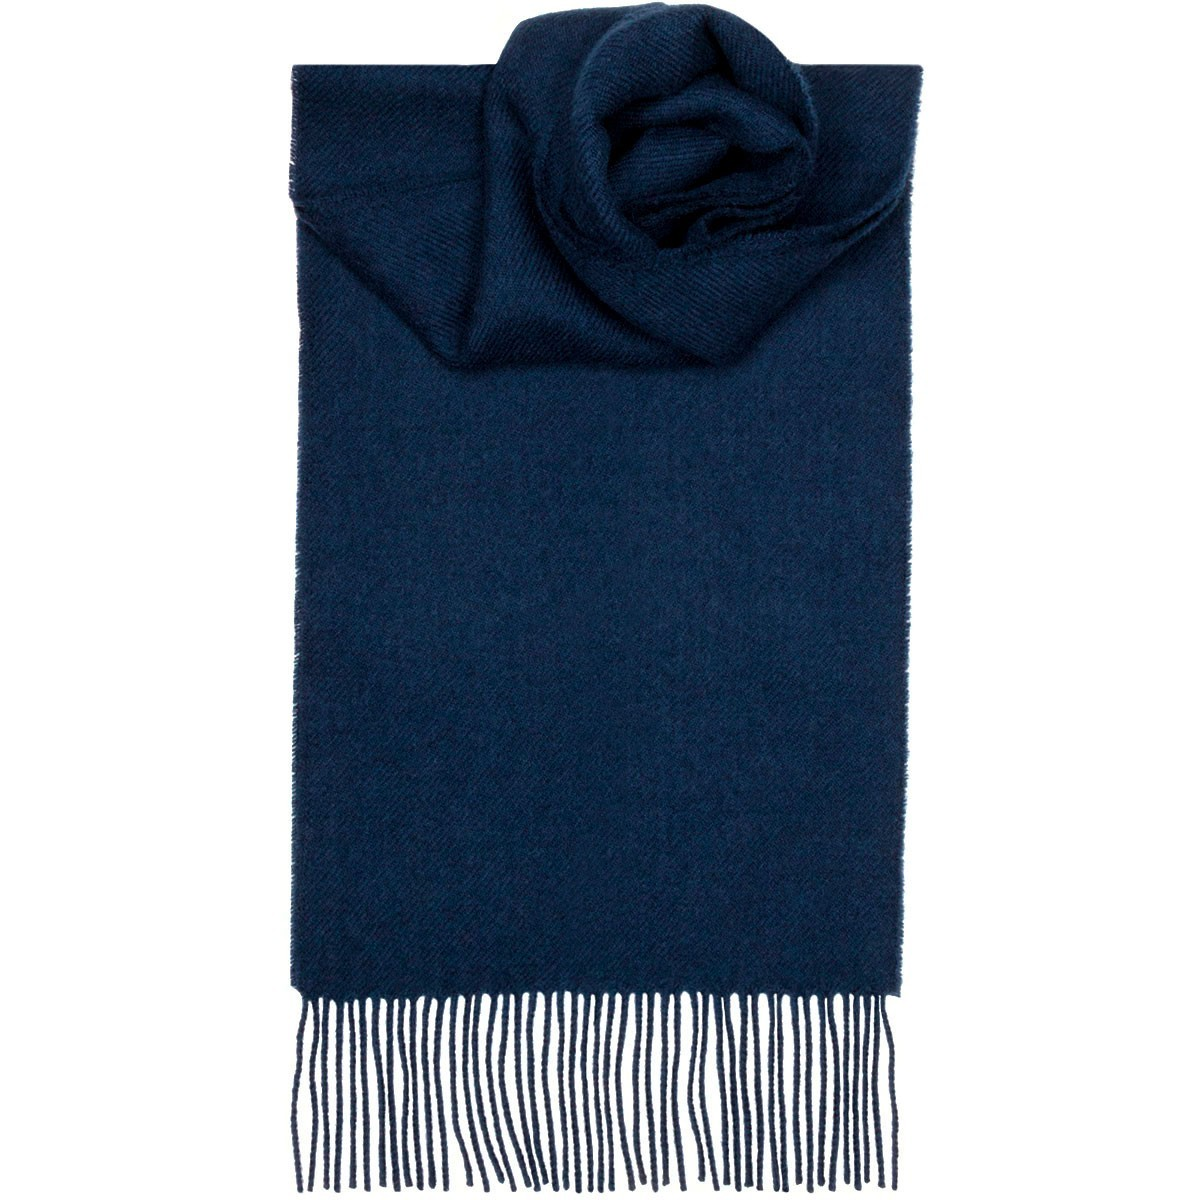 Navy Plain Coloured Tartan 100% Lambswool Scarf by Lochcarron